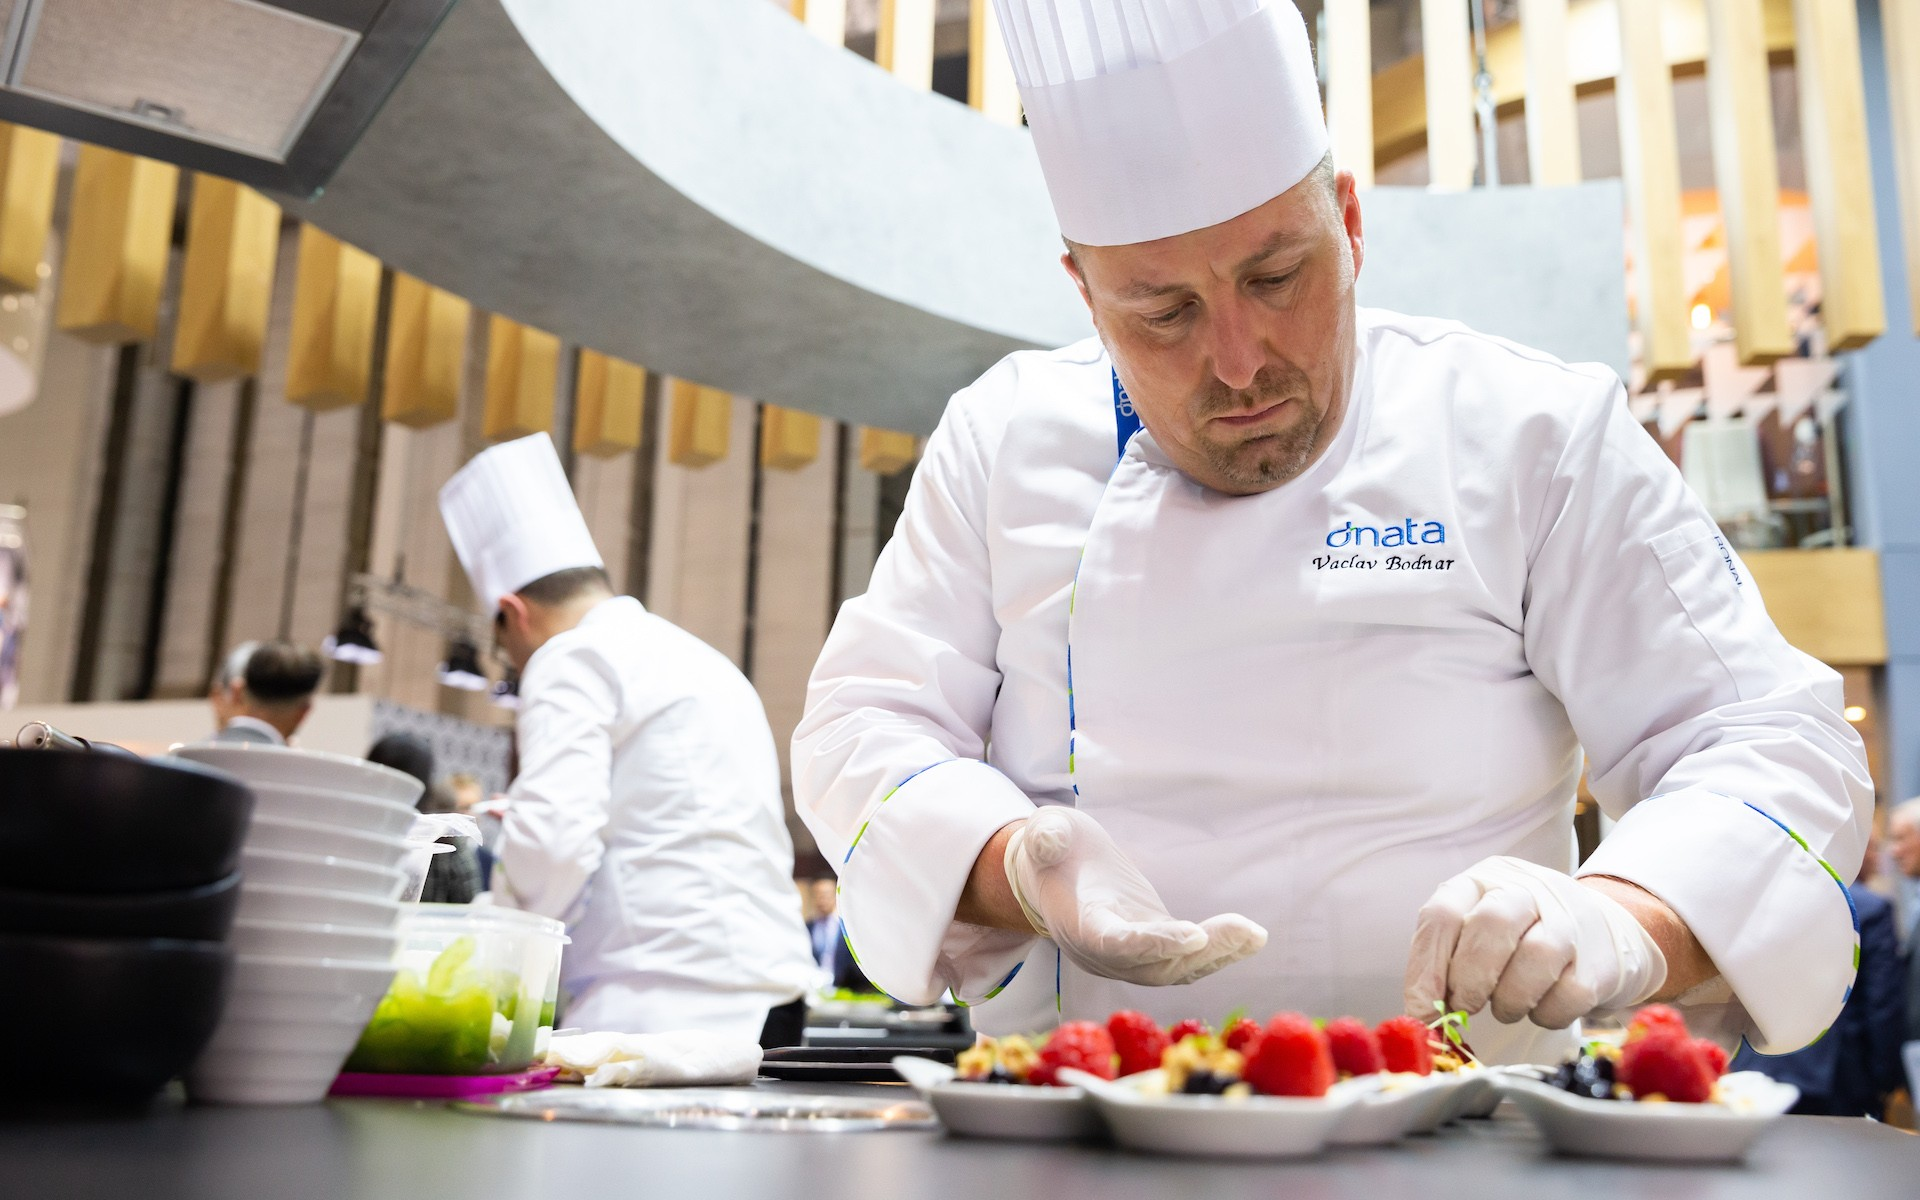 Vasek Bodnar, Executive Chef, dnata Czech Republic